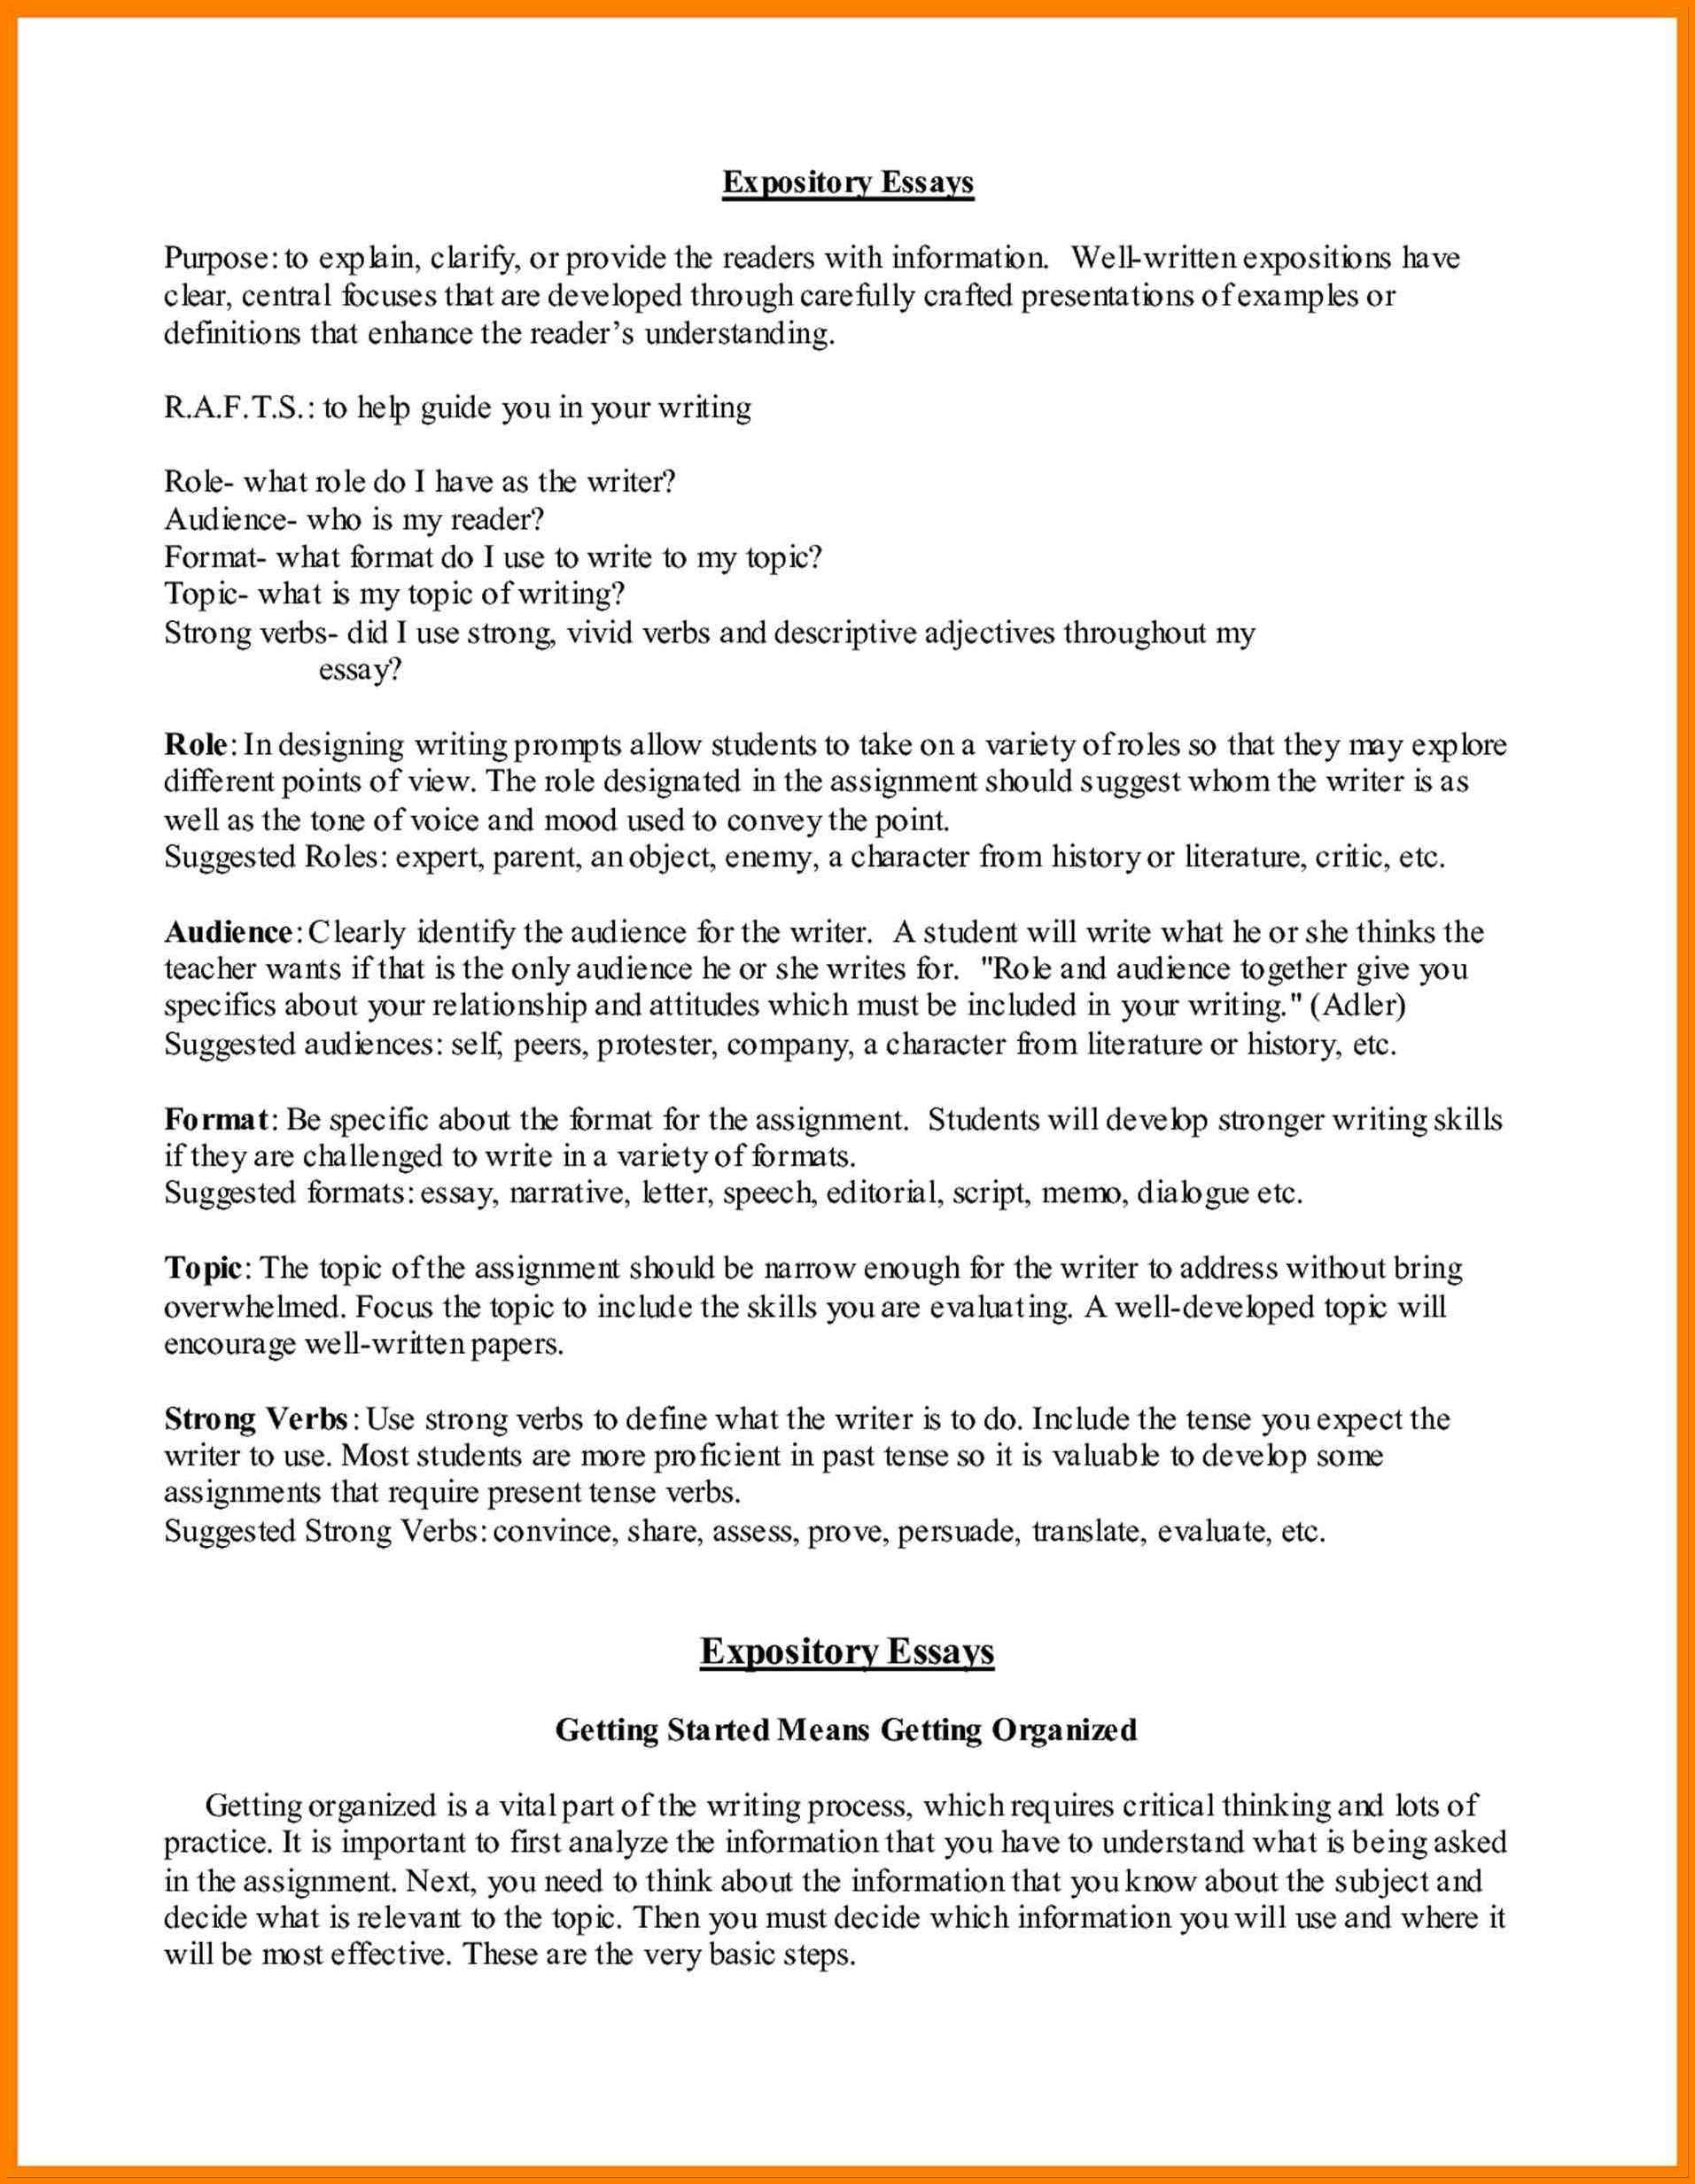 003 Essay Example Editorial Examples For High School Highschool Students With Expected Salary Sample Sat Promptssays Need Help My What To Say In Email Surprising Pdf Free Full